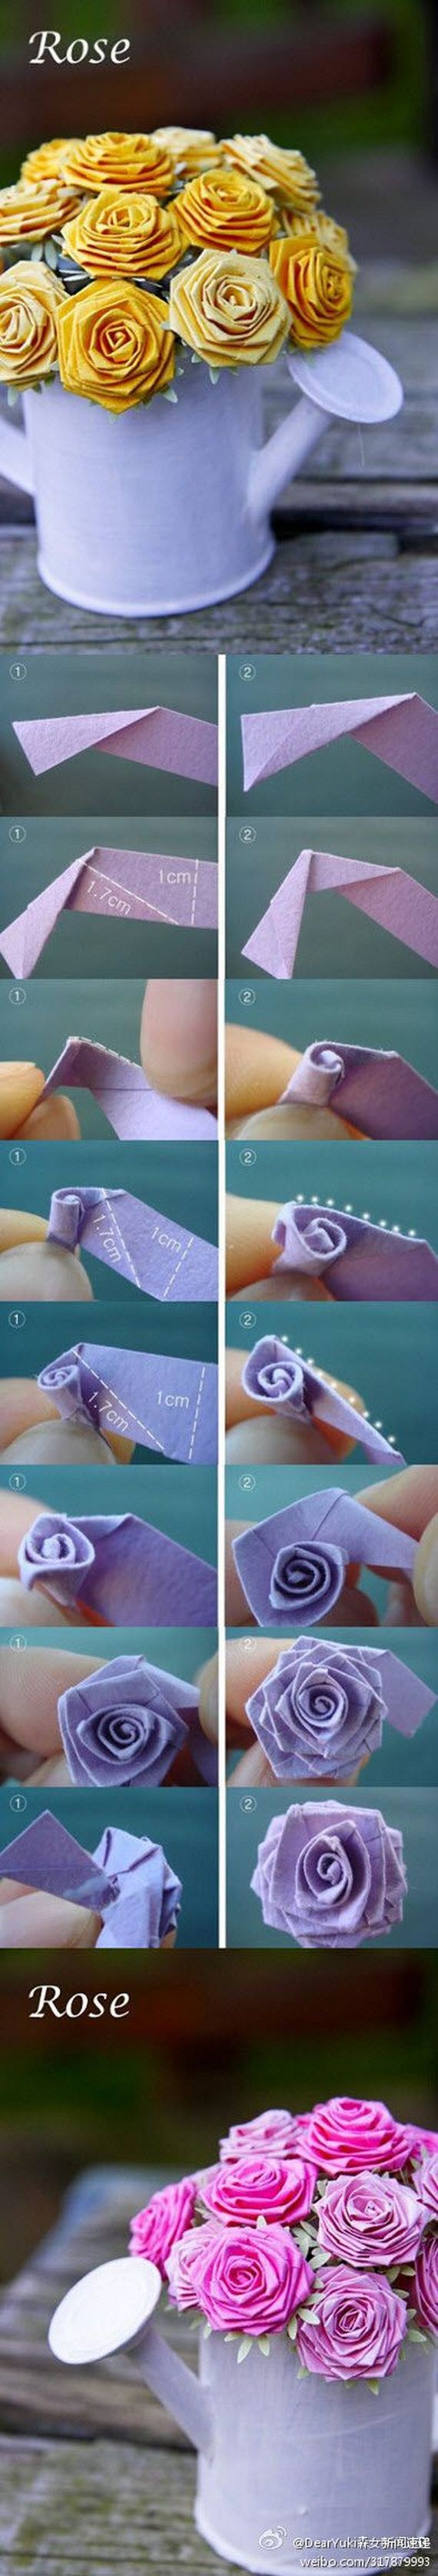 12-Rose-DIY-Projects